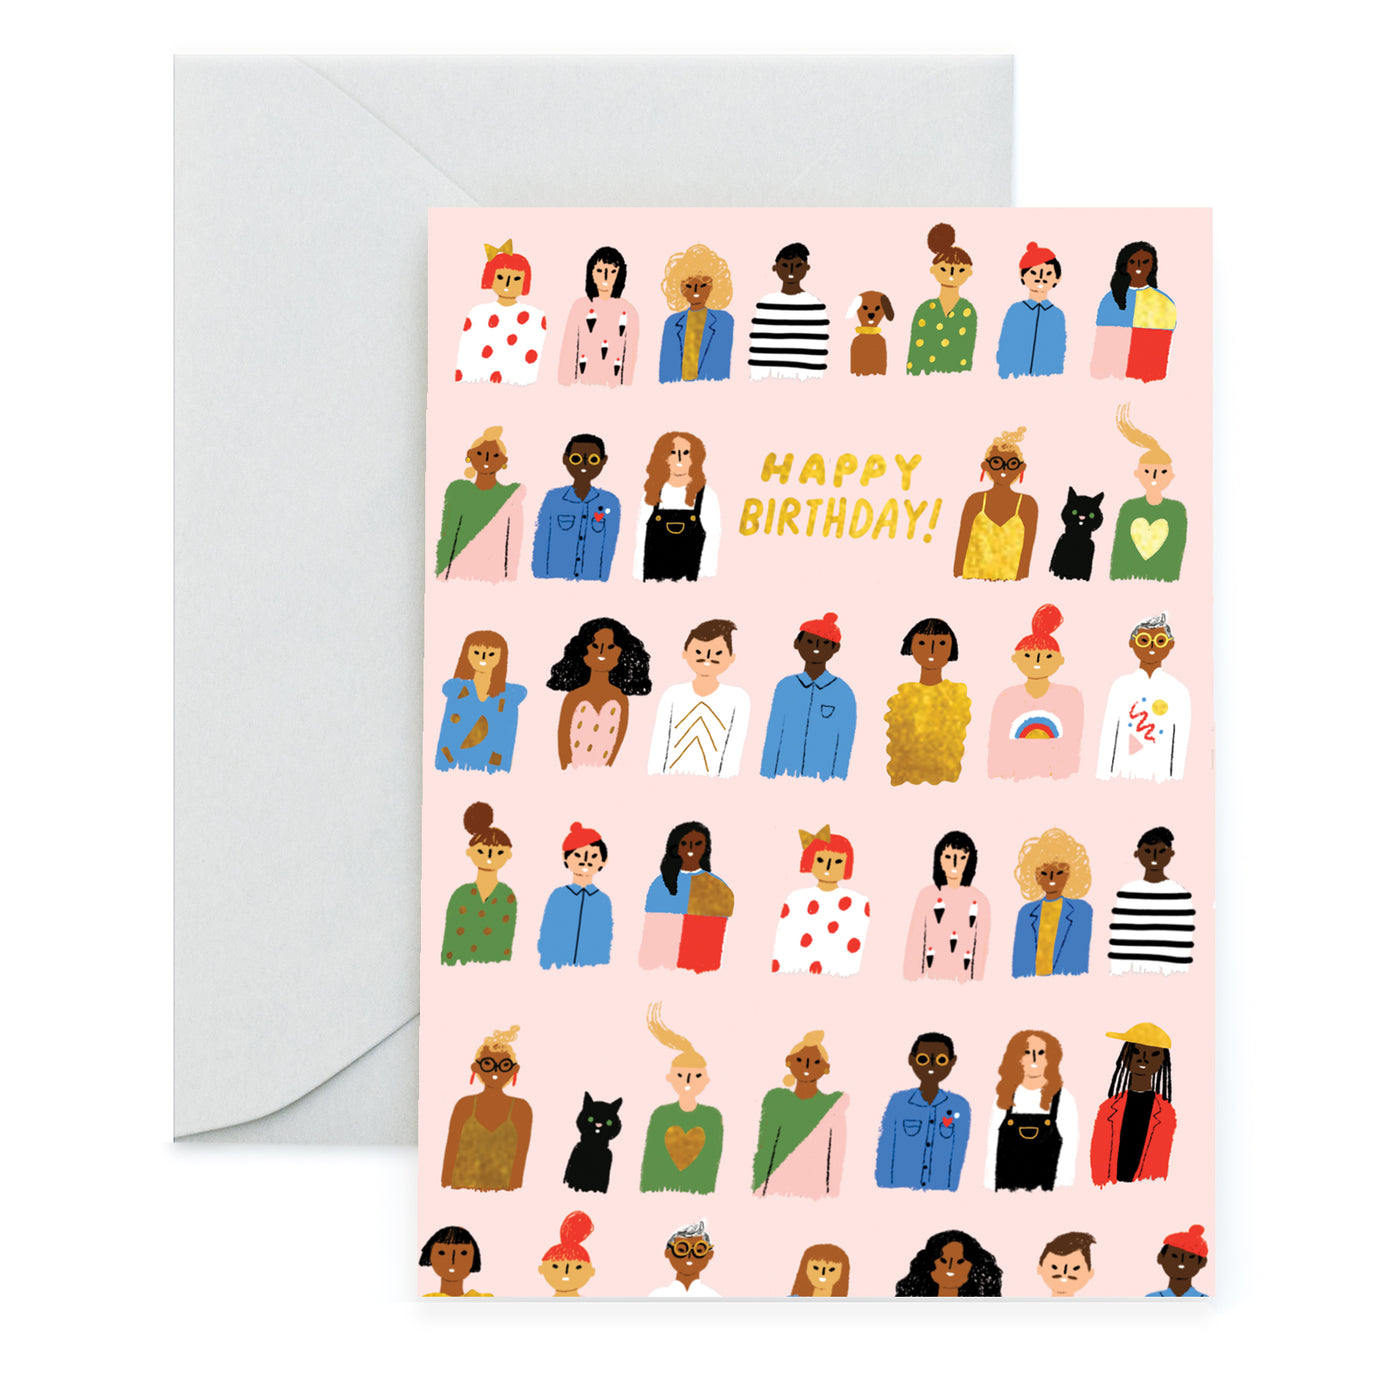 FRIENDS ARE FAMILY - Birthday Card